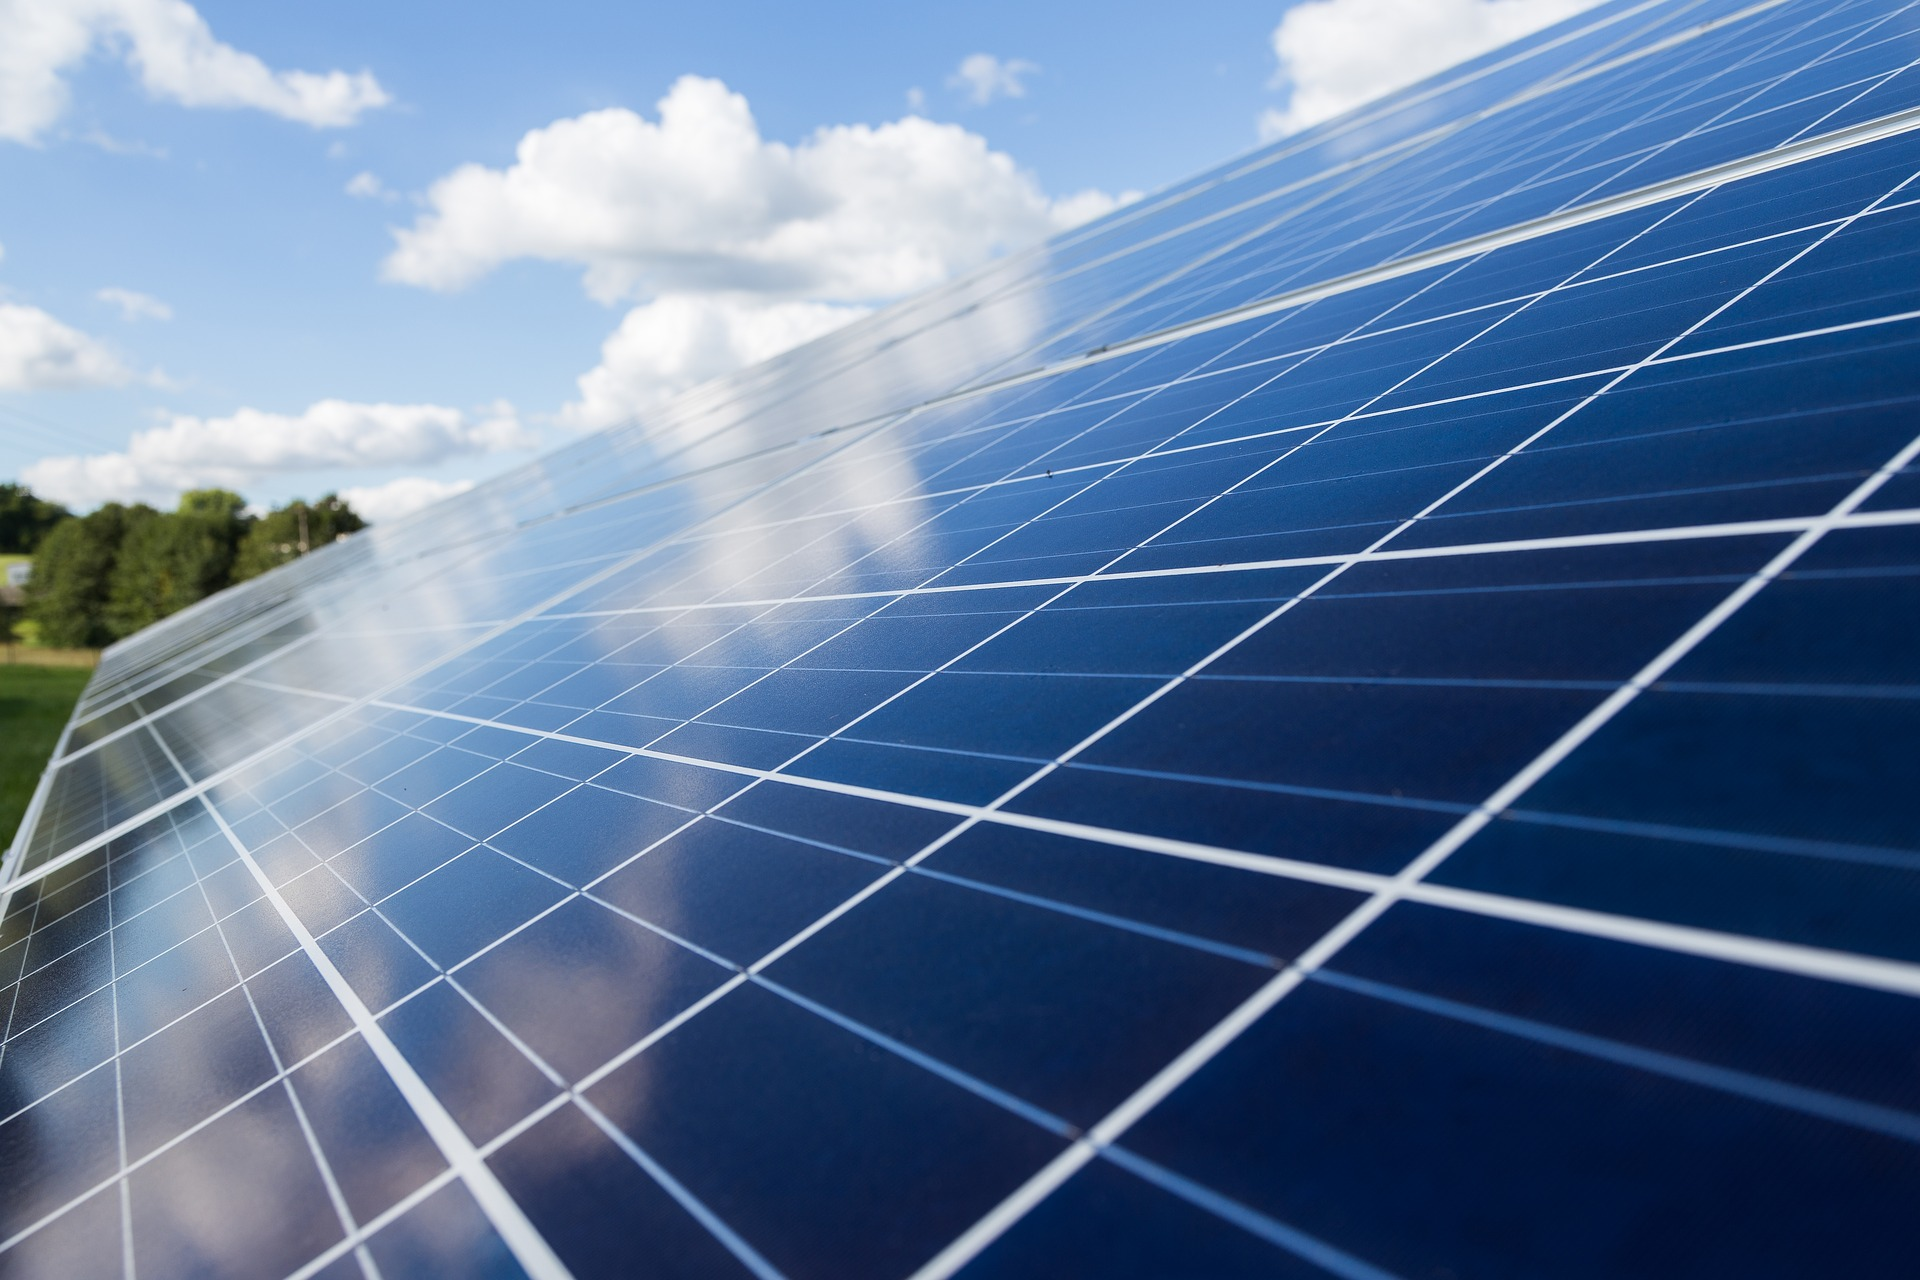 Does Commercial Solar Make Sense? Solar Panels For Business Are On The Rise So Make Hay While The Su